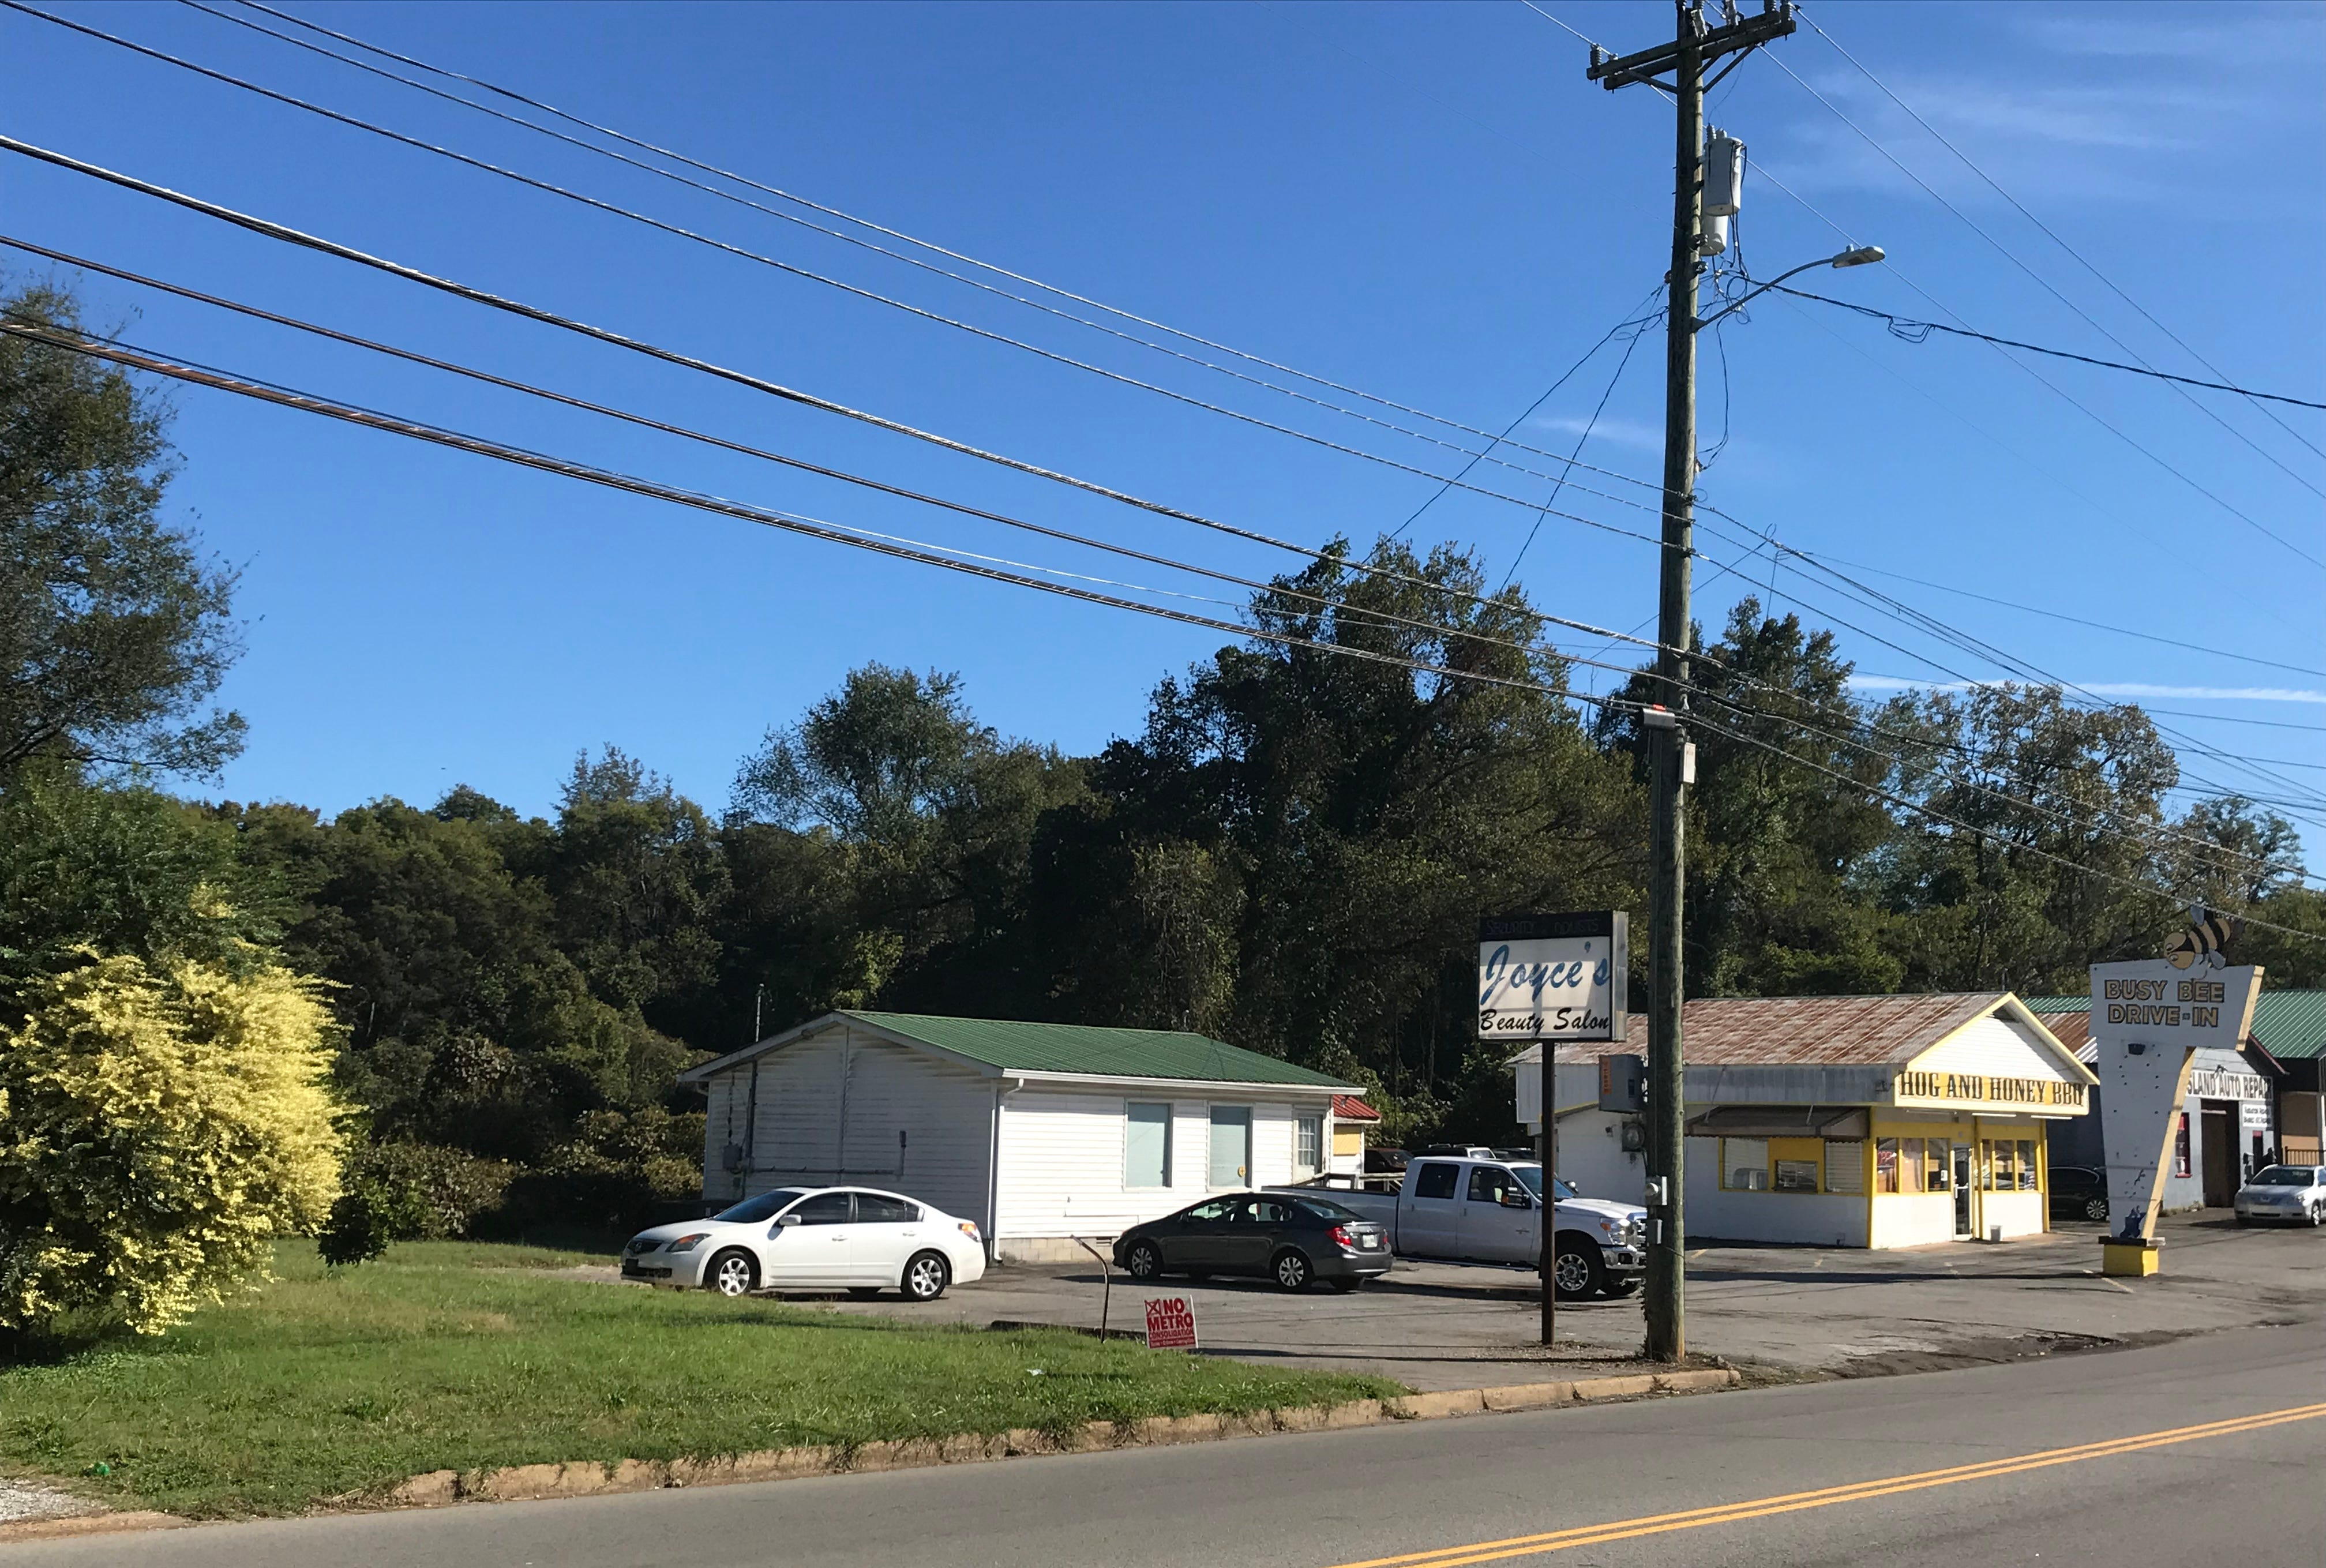 Loaves & Fishes plans to relocate to a plot of nearly 6 acres of land behind these businesses at Crossland Ave. and Martin St. in Clarksville, where they hope to construct their new facility.